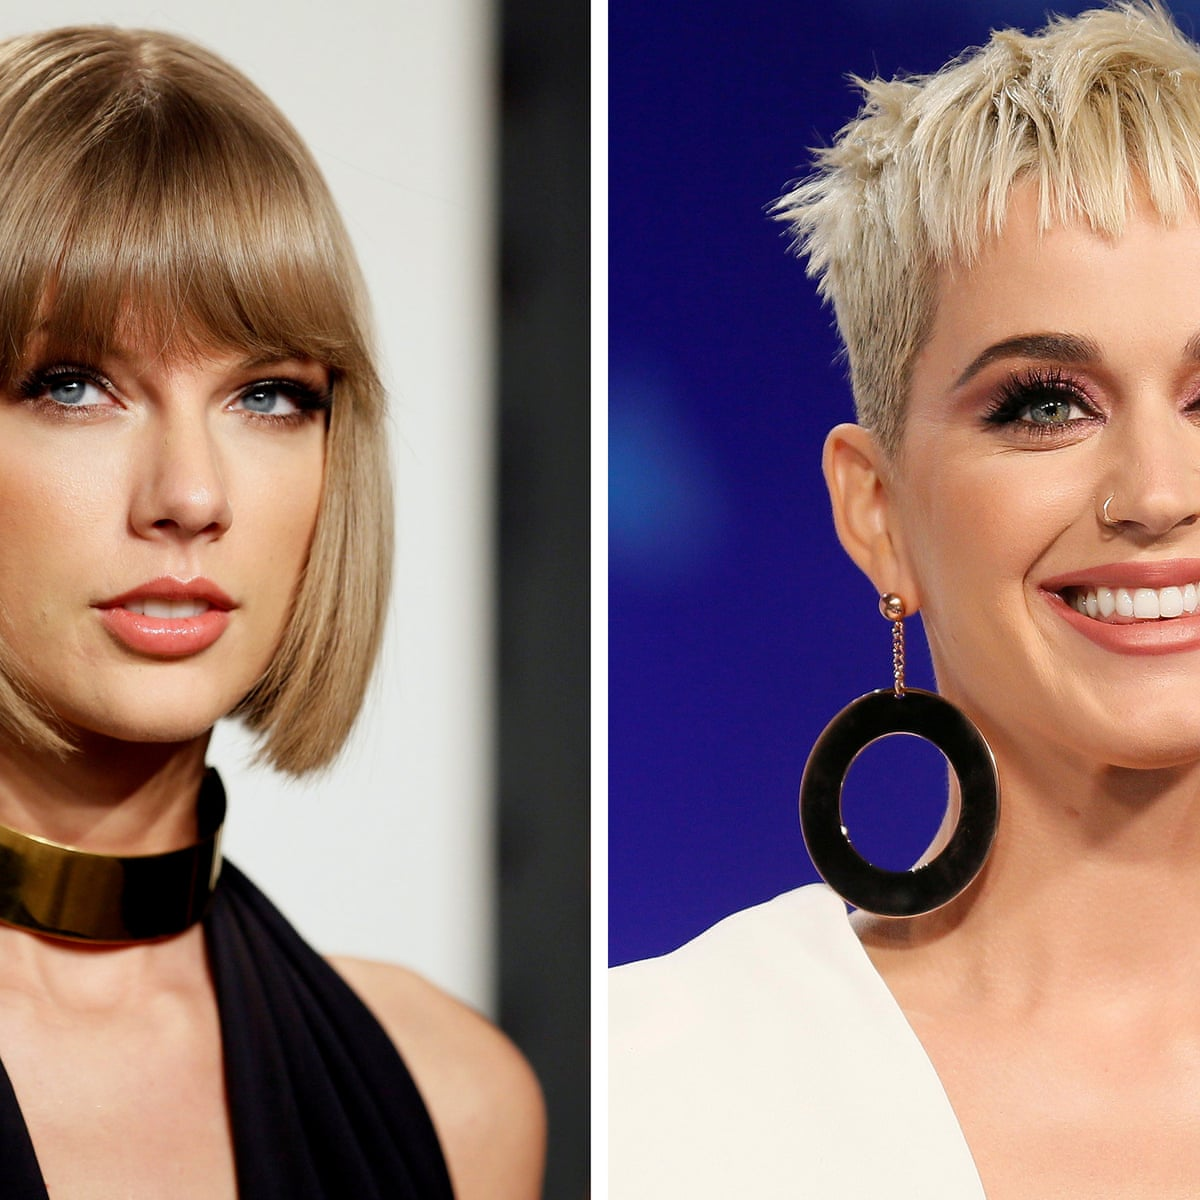 No More Bad Blood Katy Perry Sends Taylor Swift Actual Olive Branch To End Feud Katy Perry The Guardian